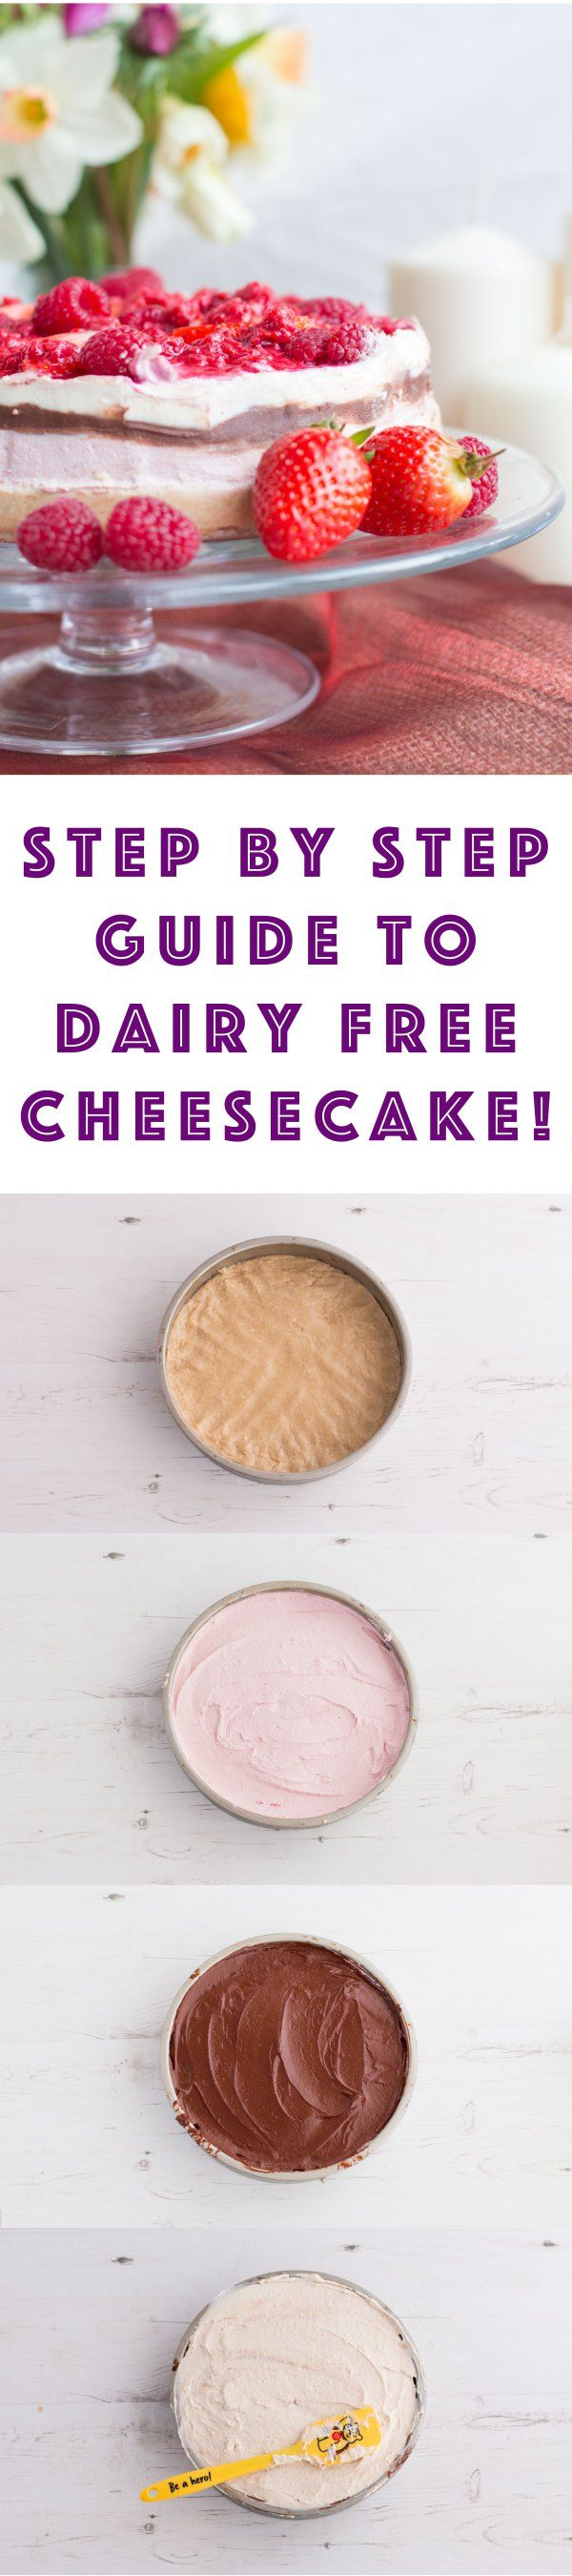 Dairy free cheesecake. Step by step guide to a simple and easy to make vegan and gluten free cheesecake recipe